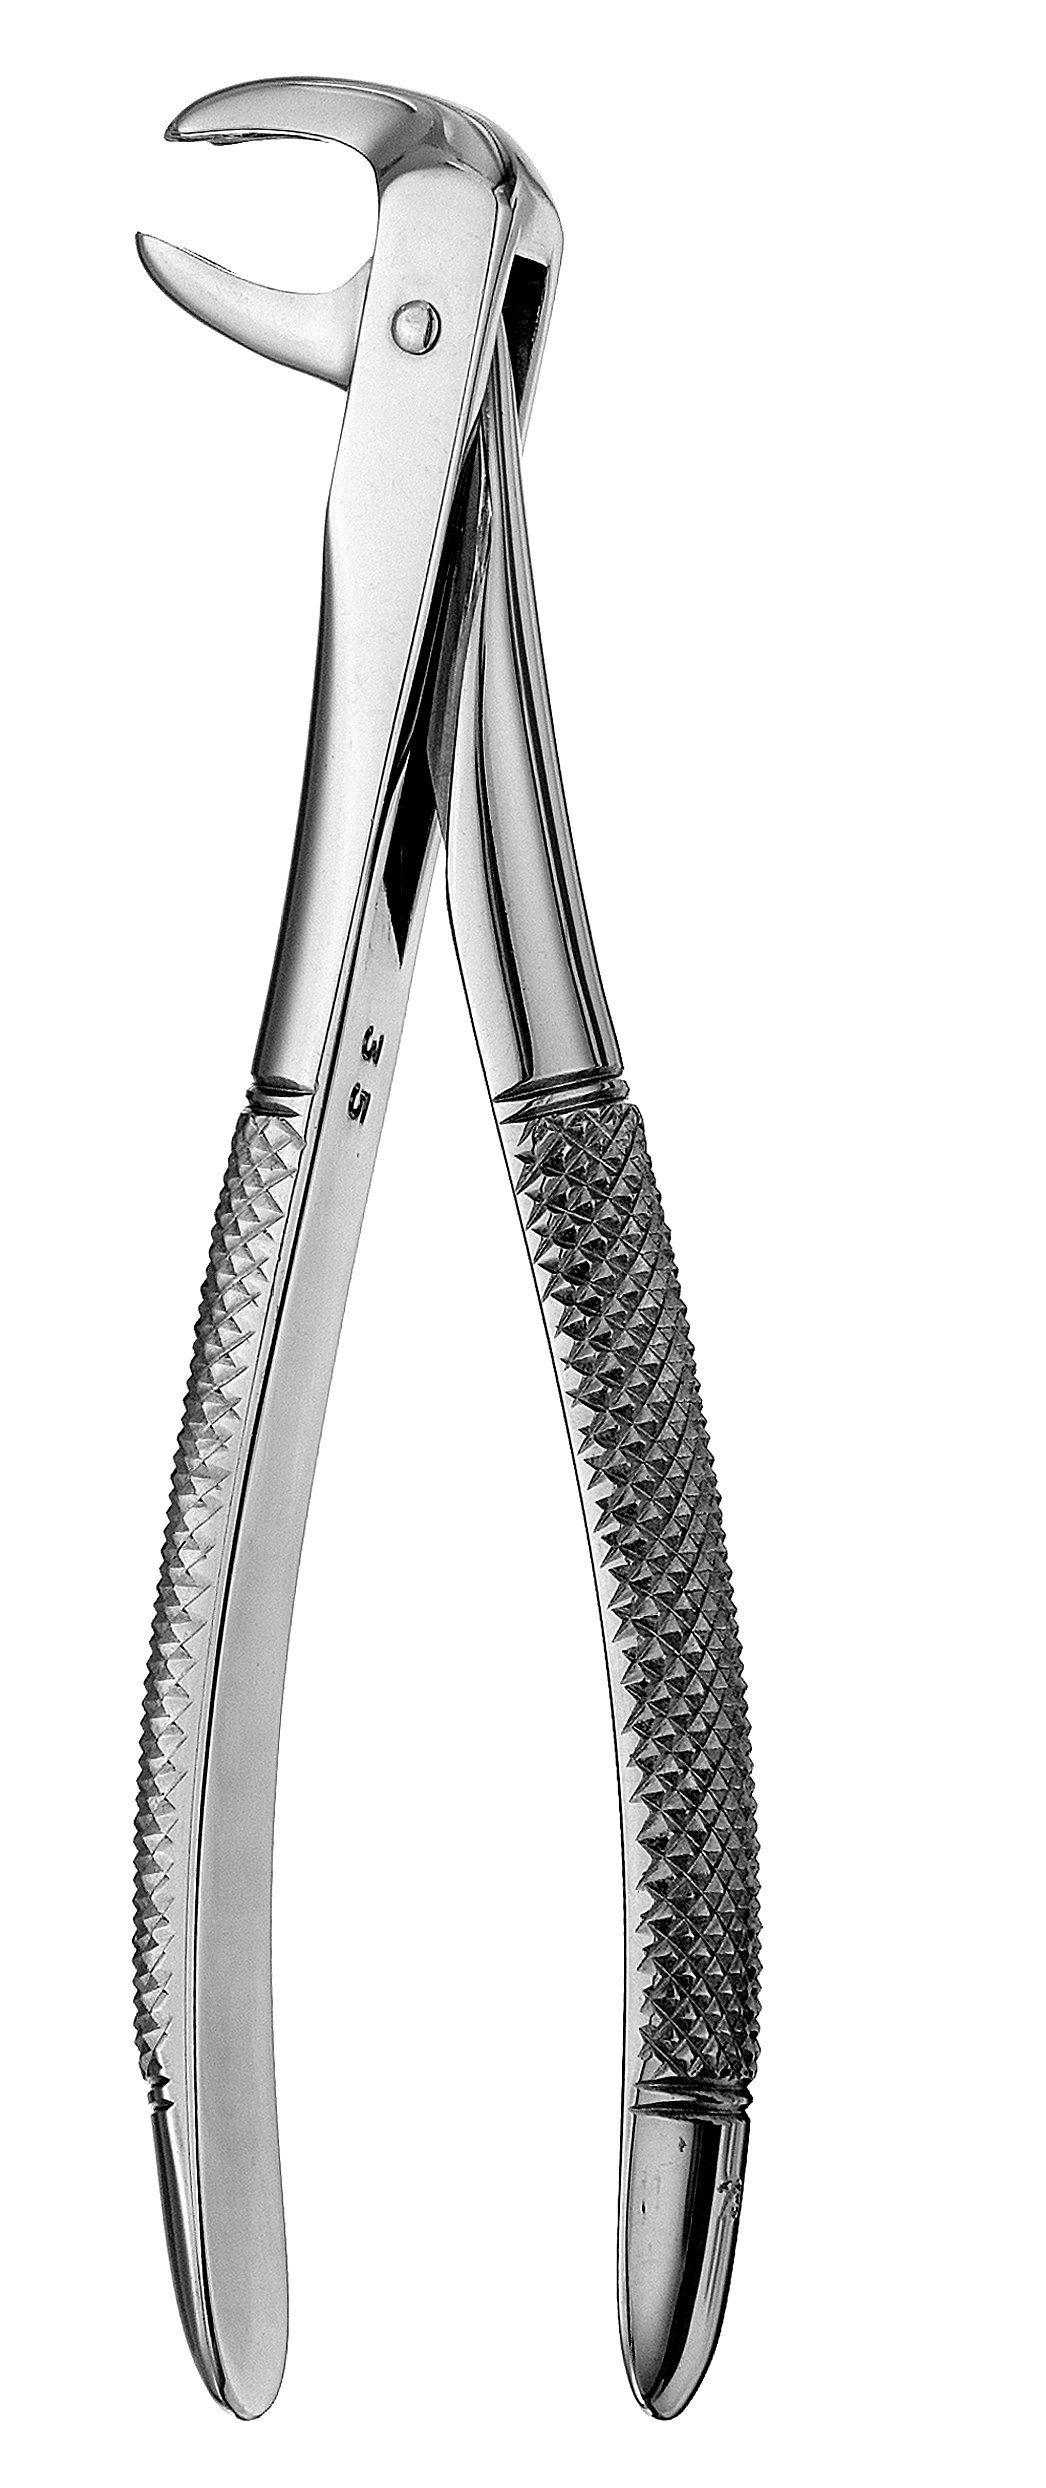 Hu-Friedy FX74 #74 European Style Root Forceps, Serrated, Lower Roots